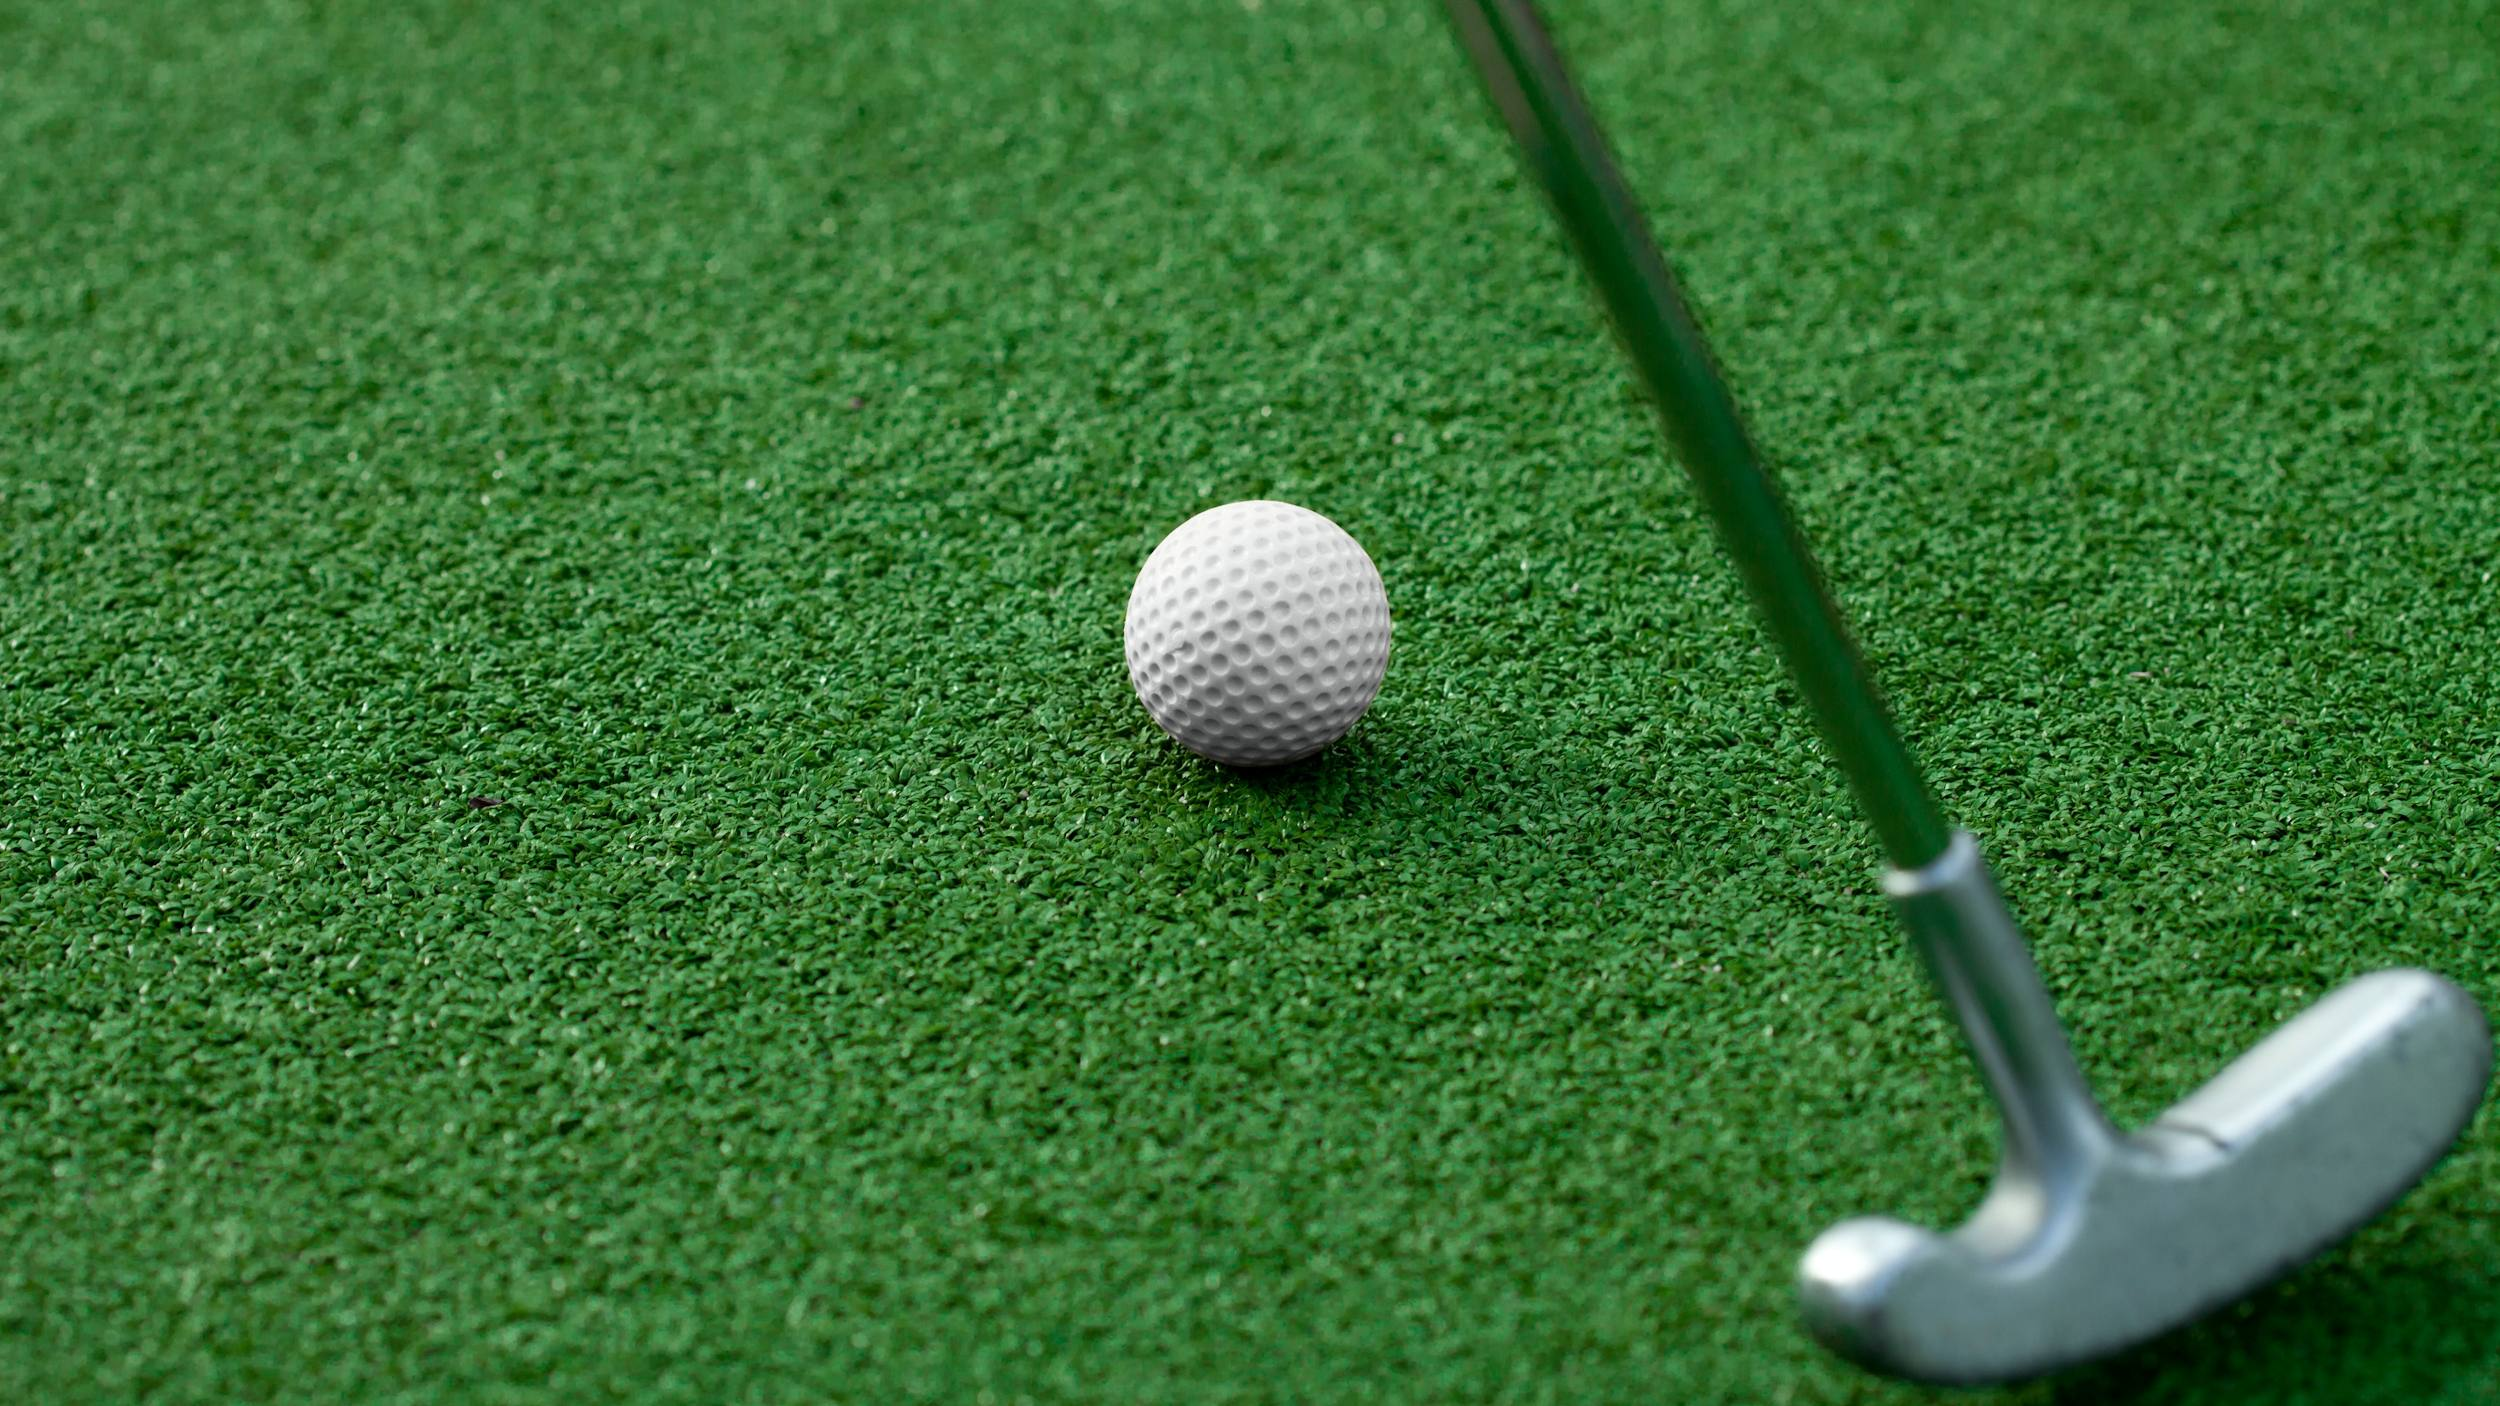 a golf ball on a putting green with someone holding a putter close by ready to tap the ball